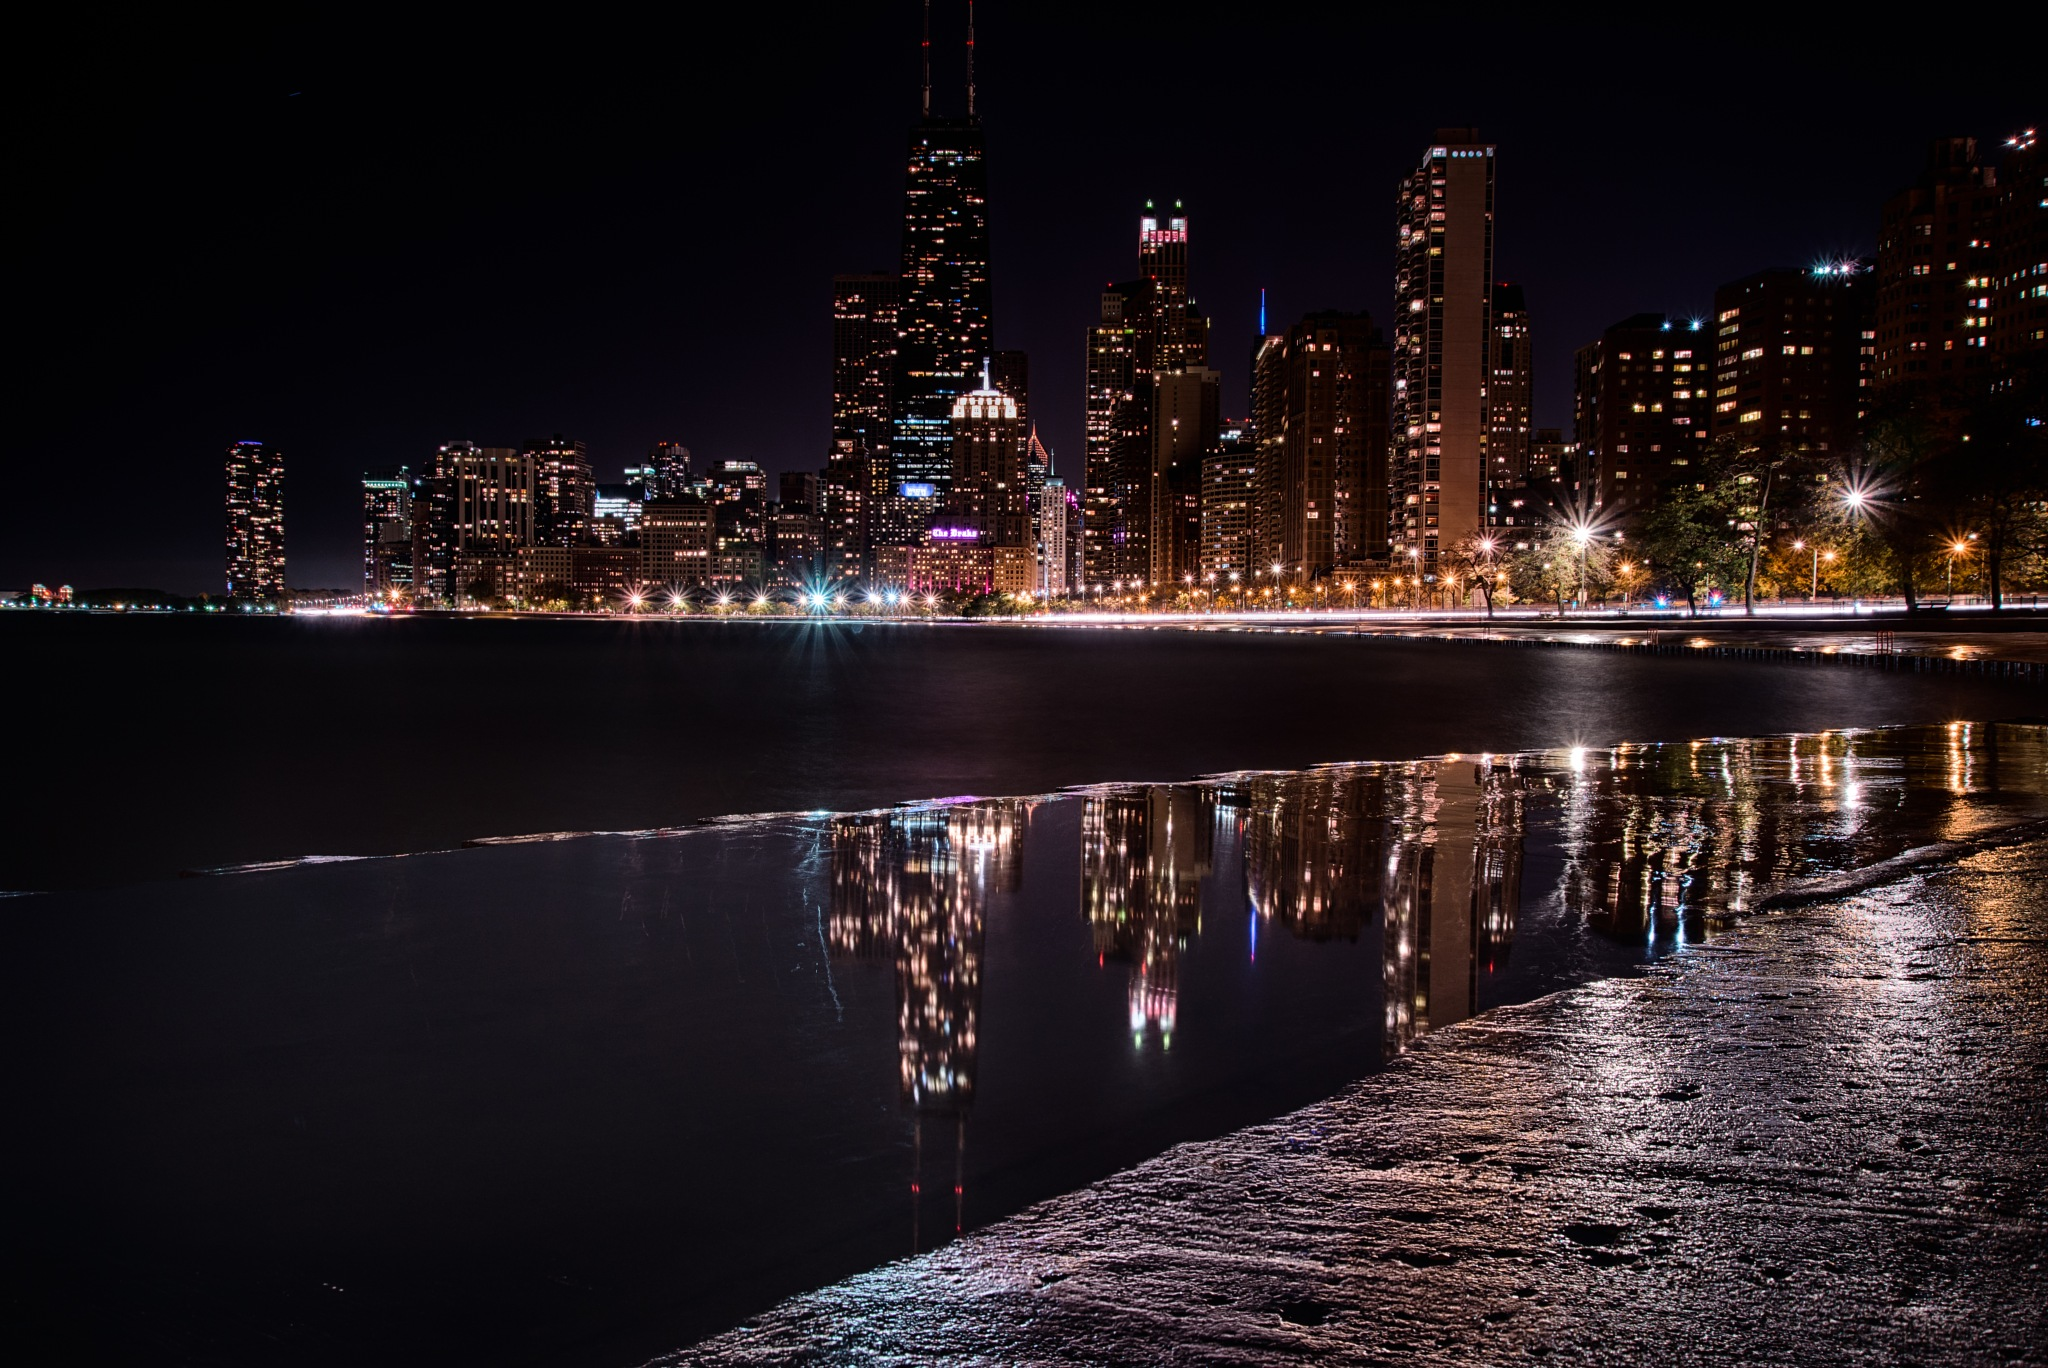 Glassy City Reflections by Raf Winterpacht